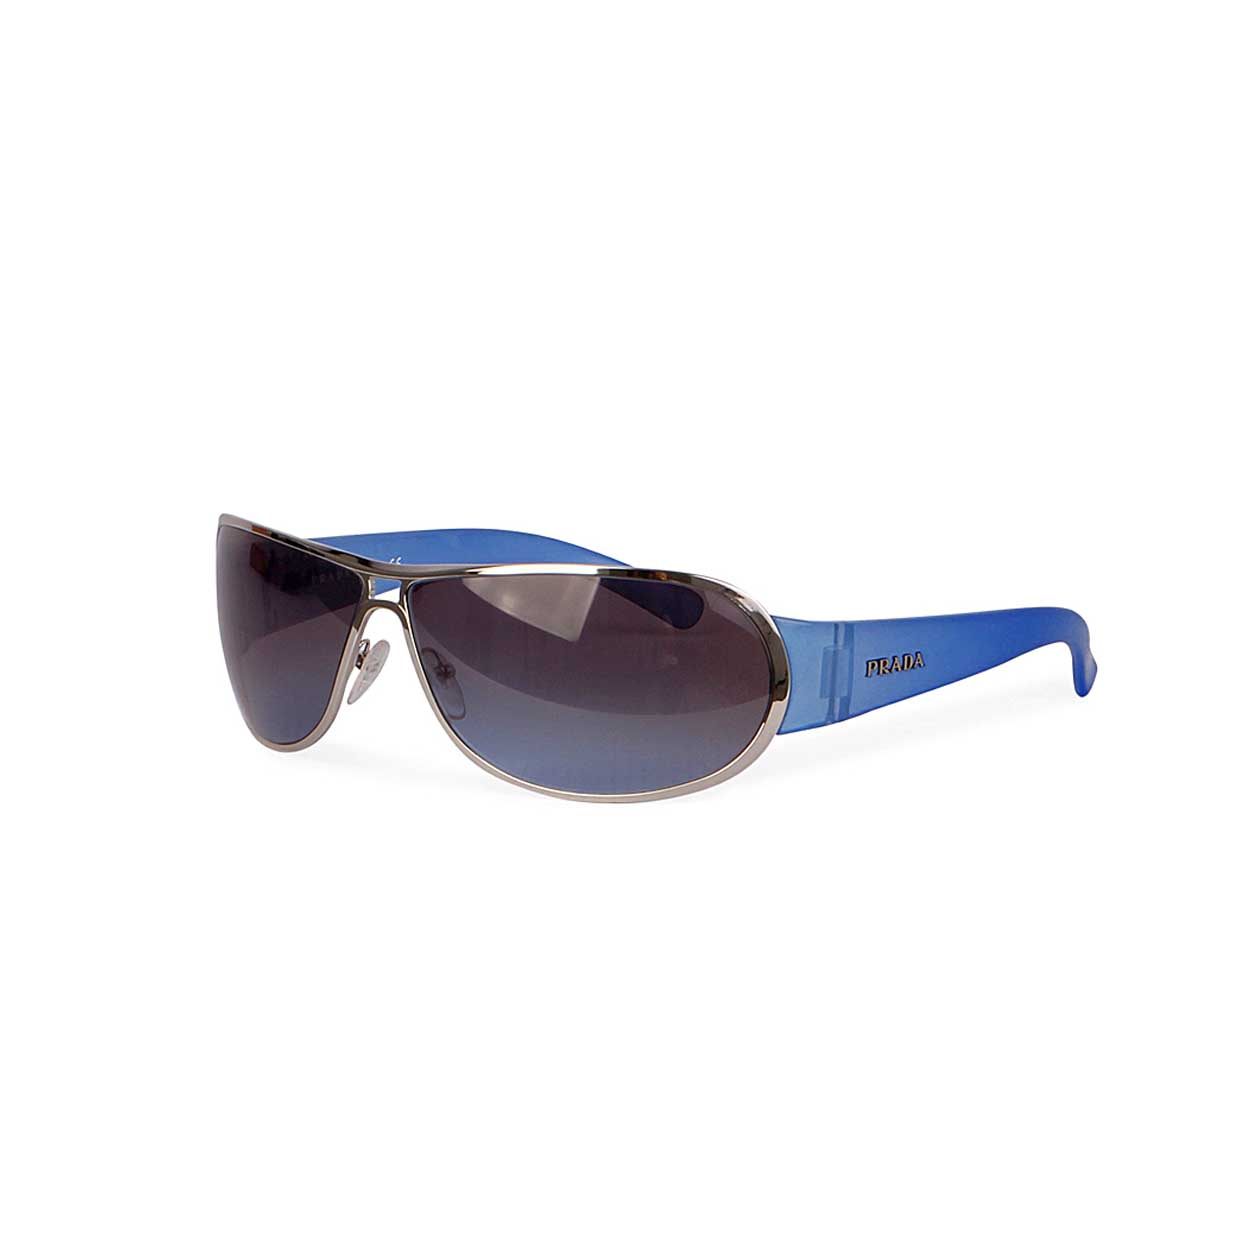 PRADA Sunglasses SPR 70G Blue